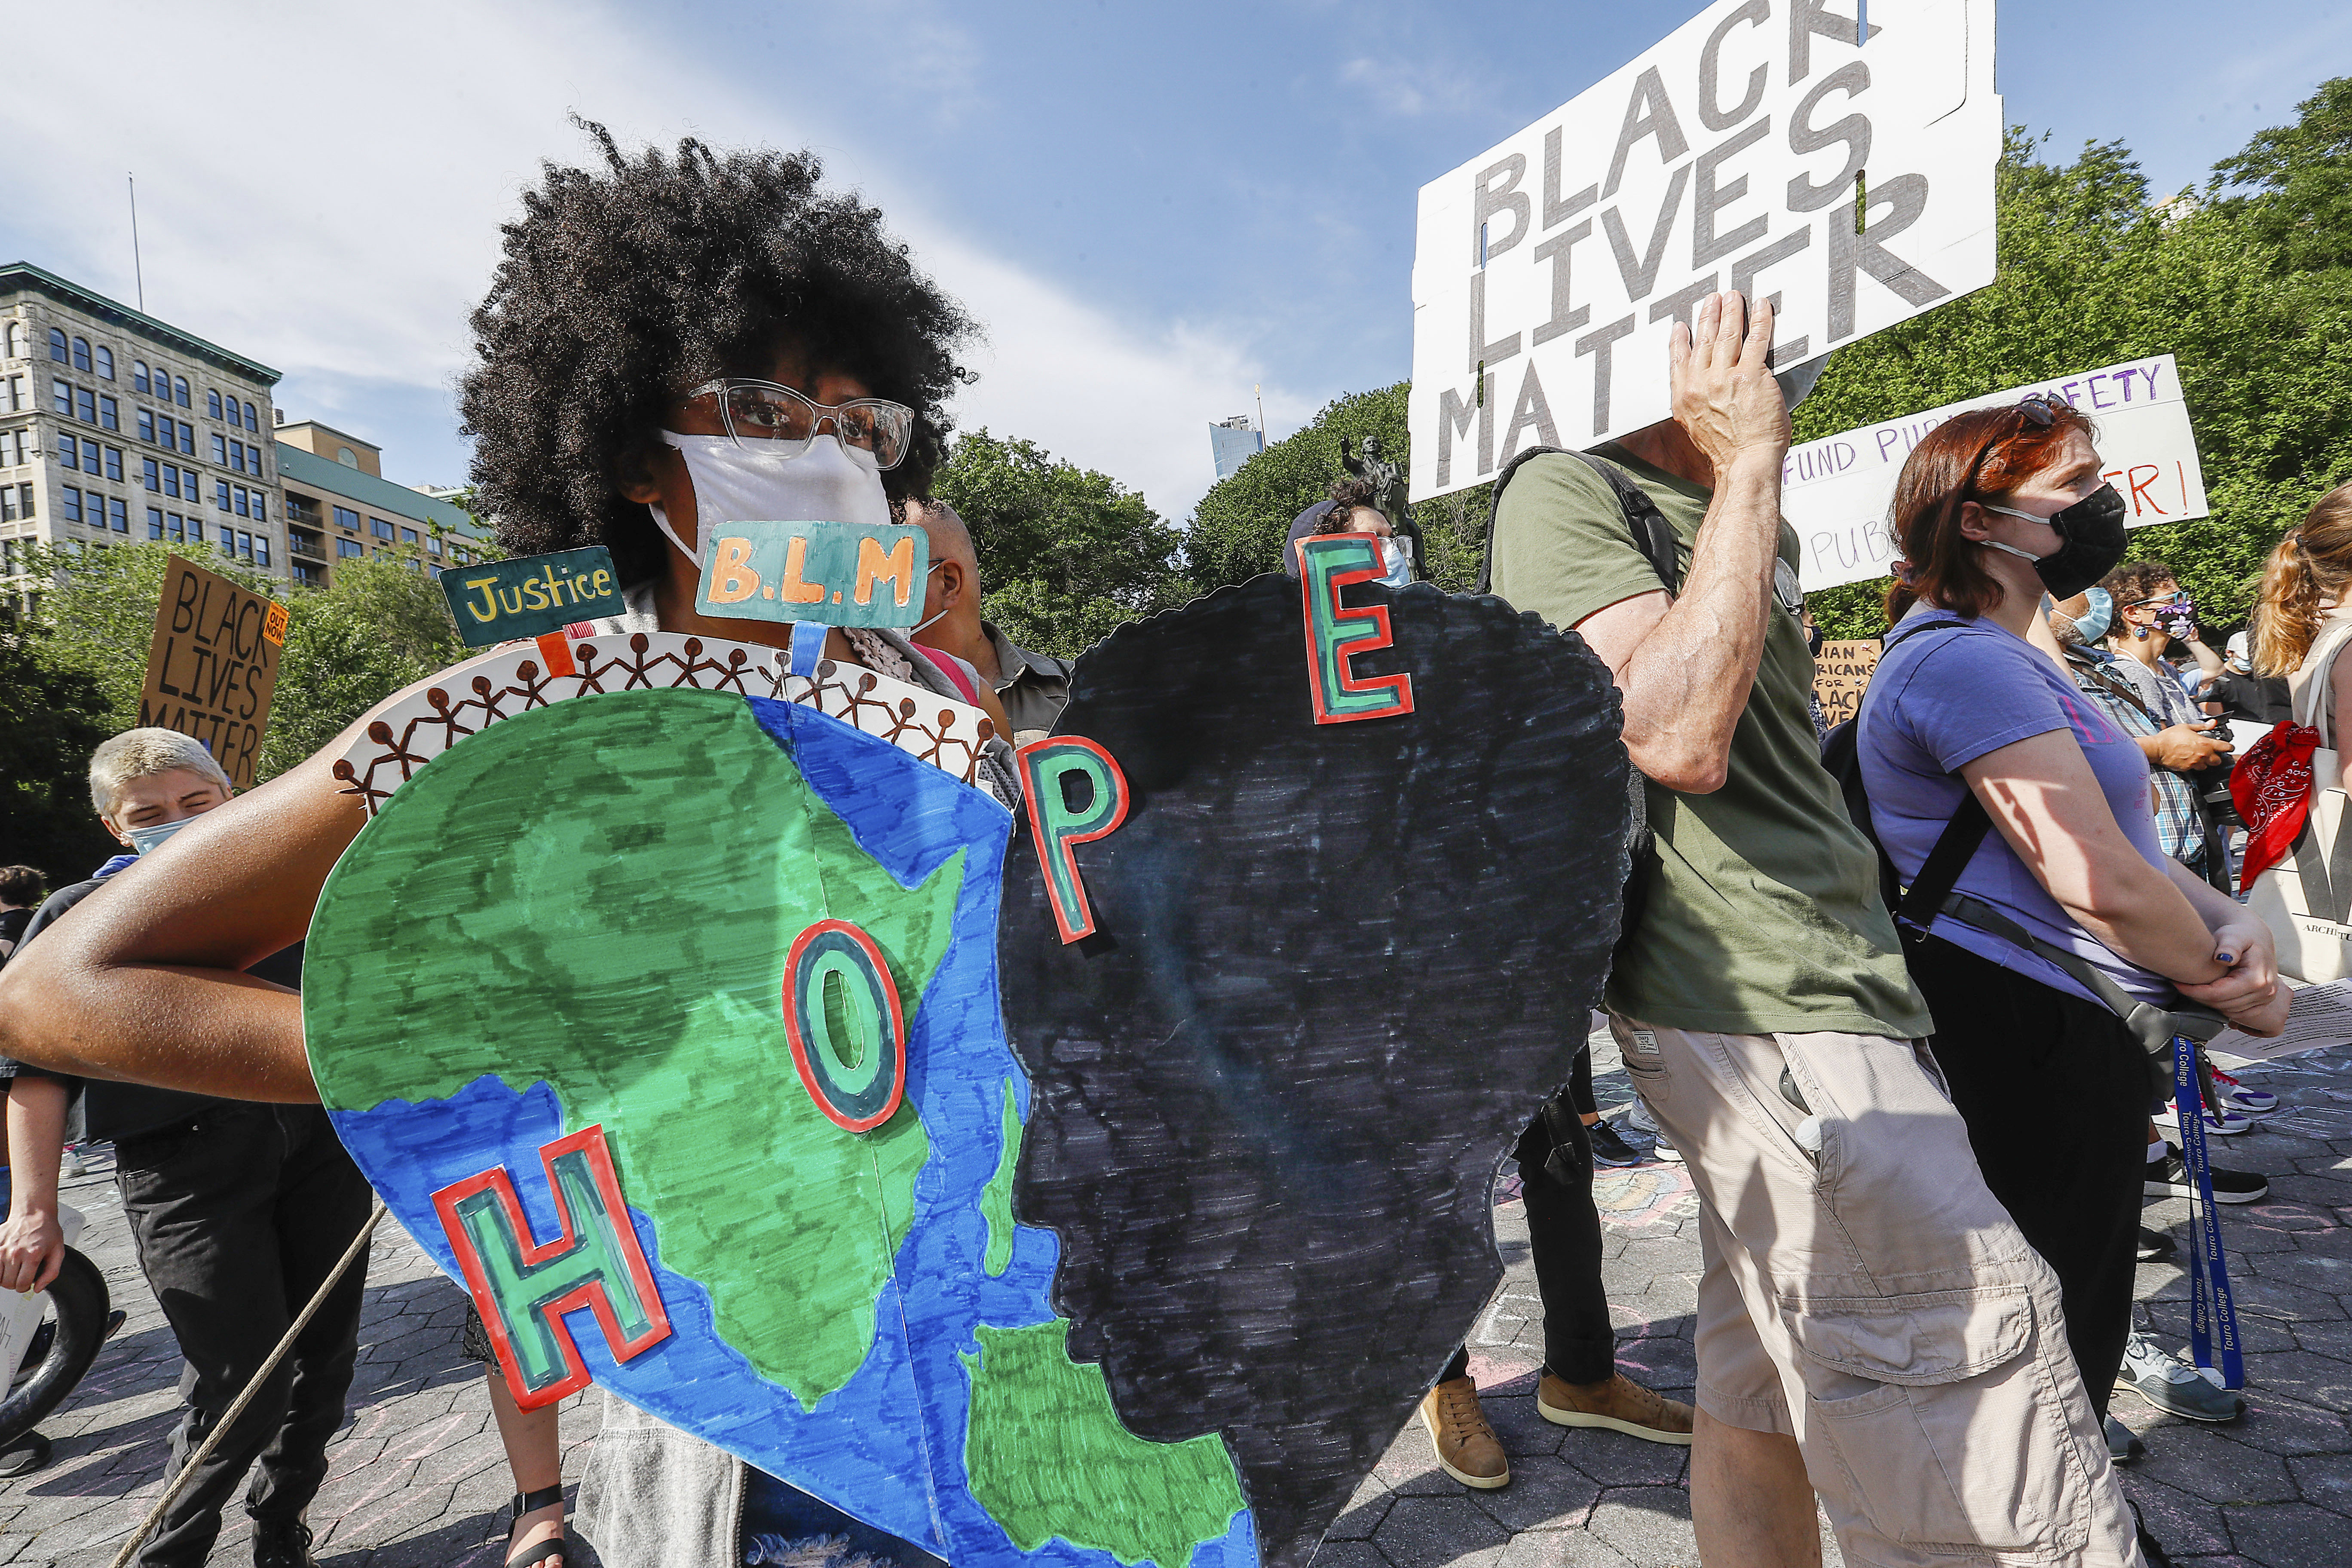 Protesters hold placards during the demonstration. Hundredths demonstrate in New York against President Trump's Fascist KKKAMPAIN and Black Lives Matter march on Juneteenth weekend. Demonstrators continue to march against police brutality and racial injustice across America. (Photo by John Lamparski / SOPA Images/Sipa USA)(Sipa via AP Images)